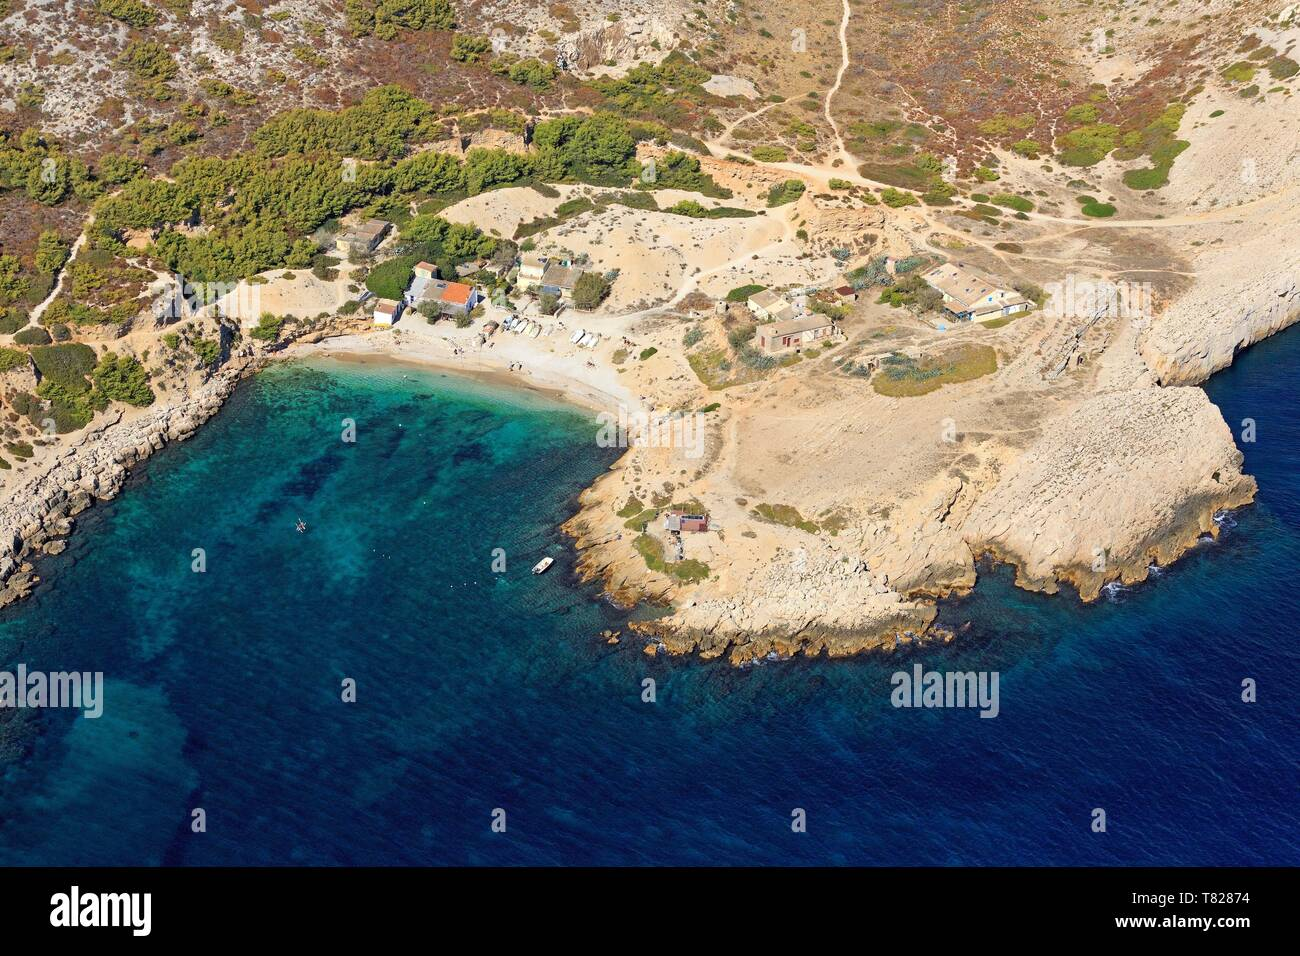 France, Bouches du Rhone, Calanques National Park, Marseille, 9th arrondissement, Marseilleveyre cove (aerial view) - Stock Image